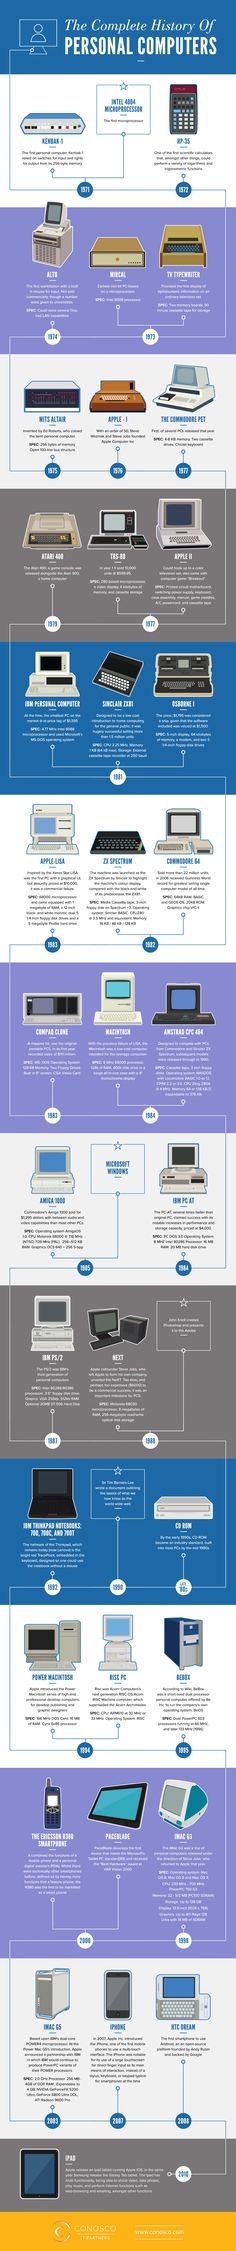 The Complete History of Personal Computers #infographic                                                                                                                                                     More